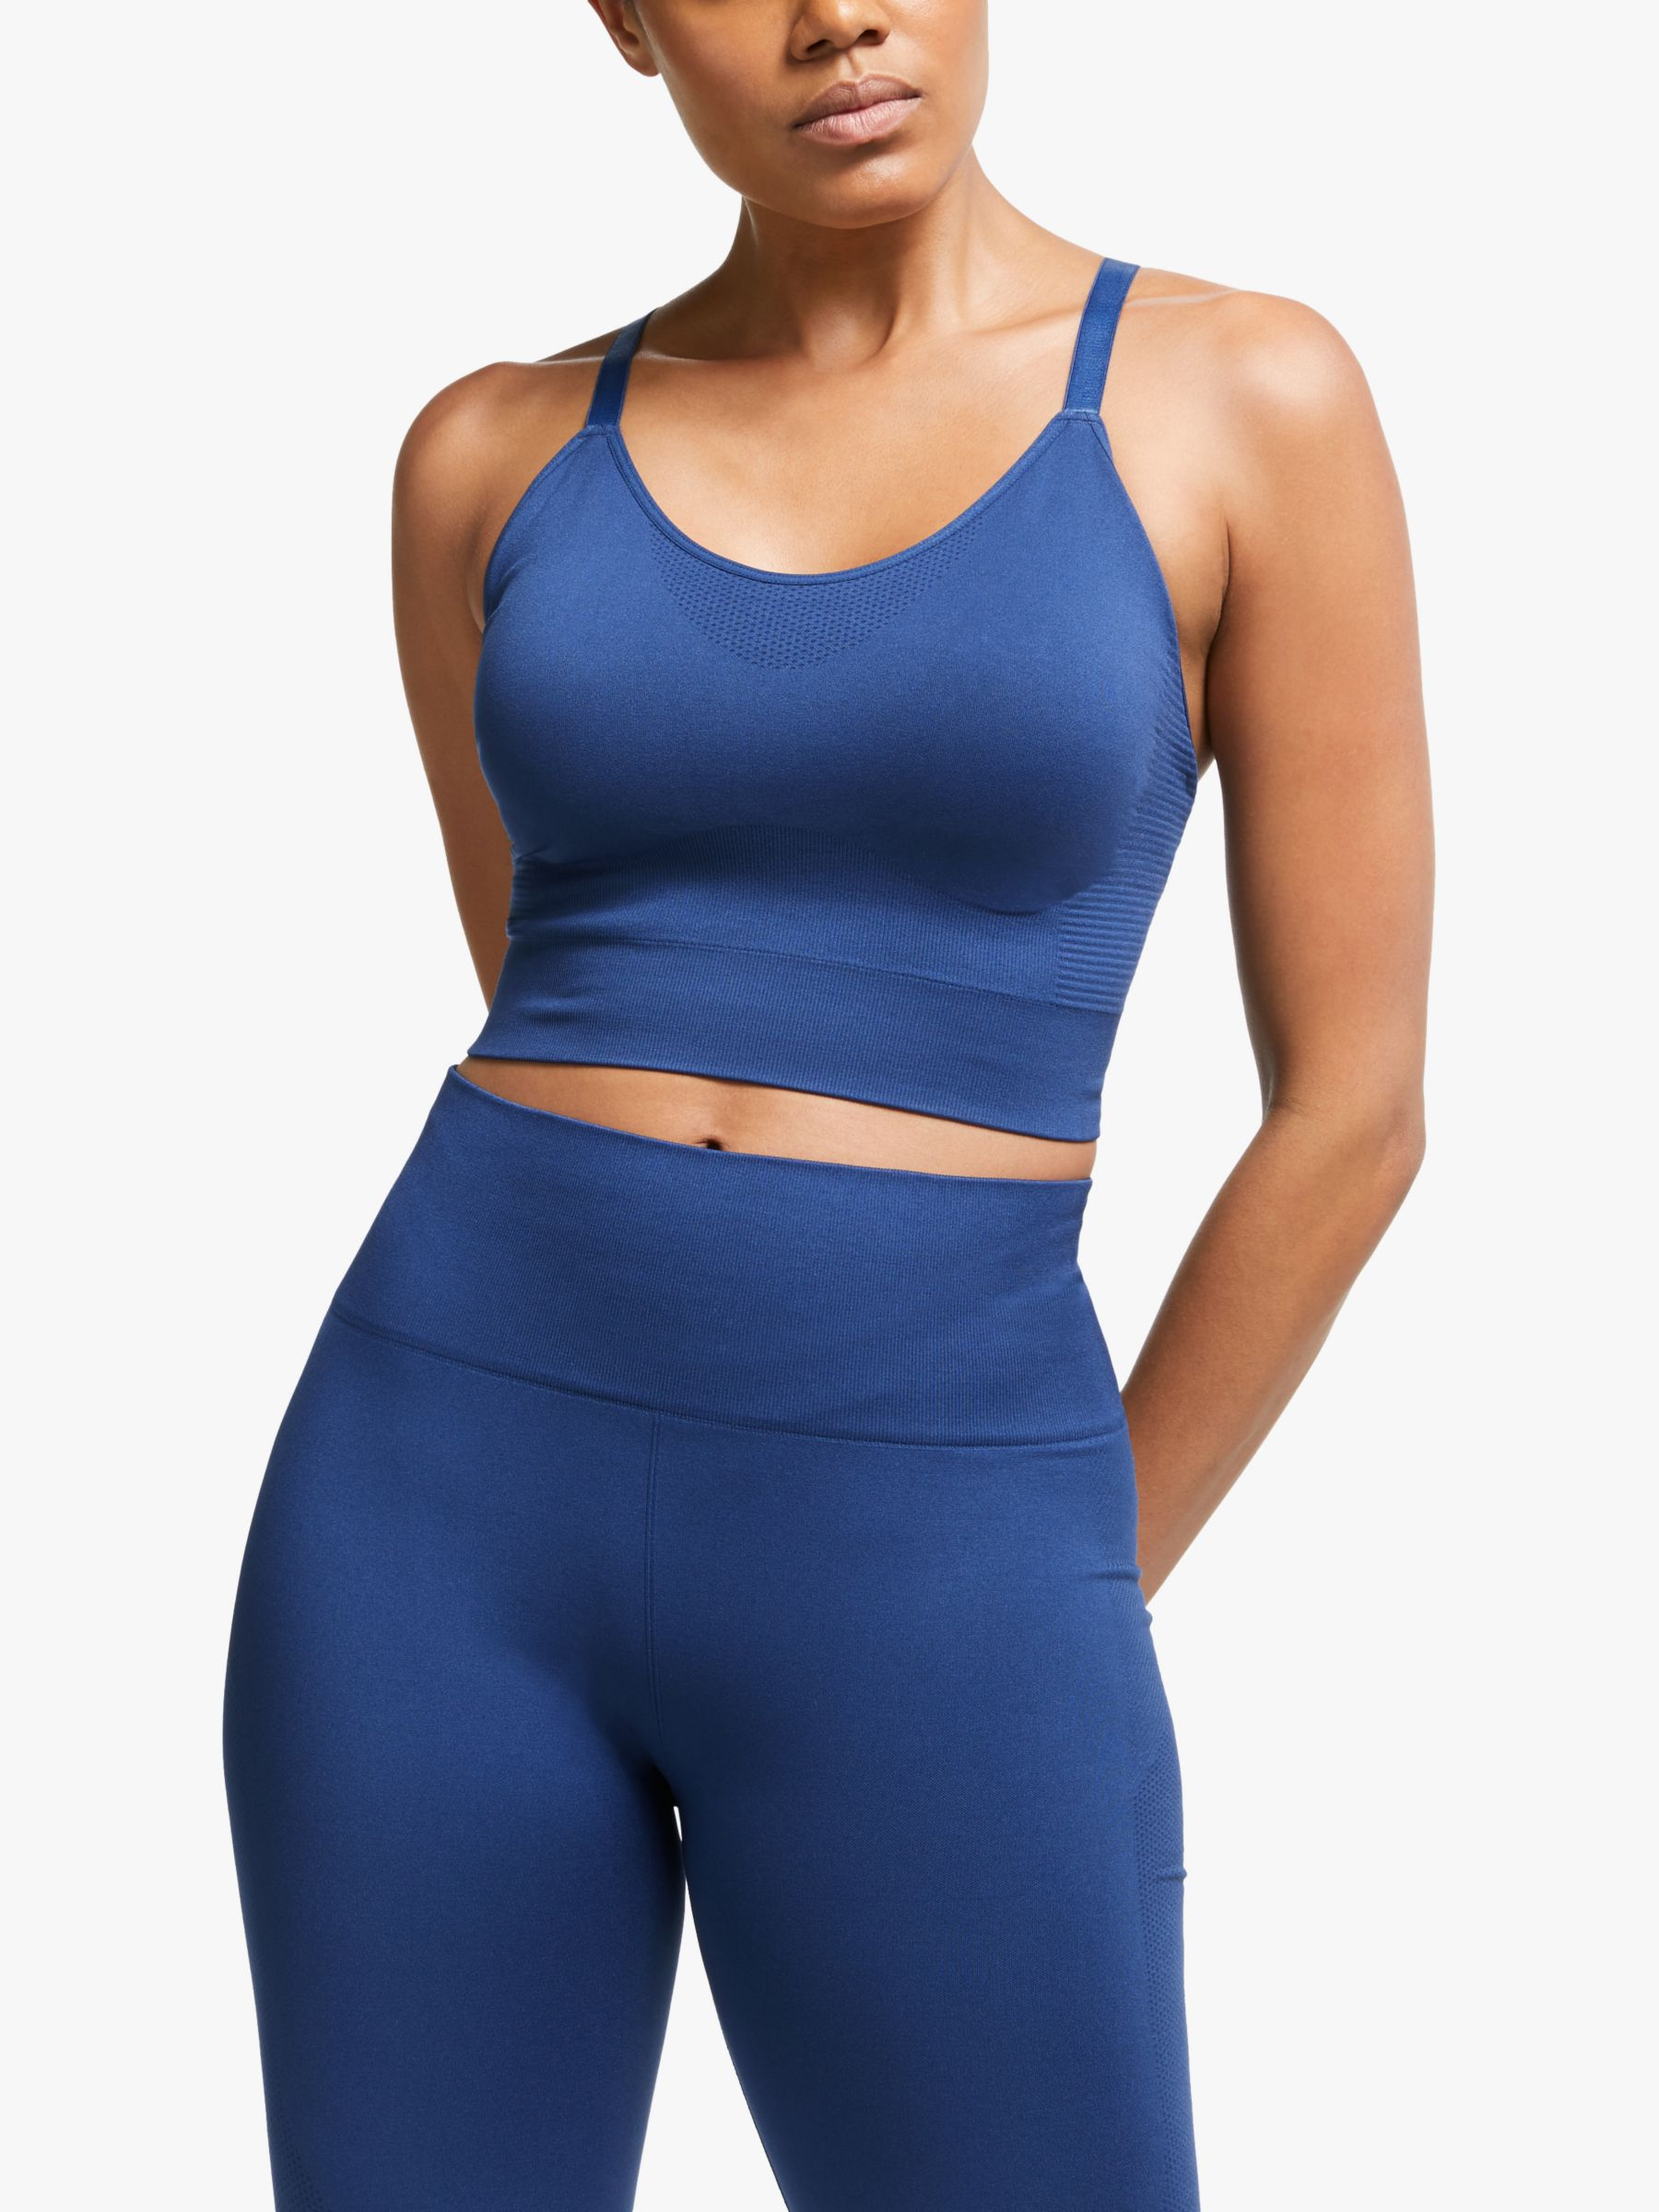 Adidas adidas Seamless Sports Bra